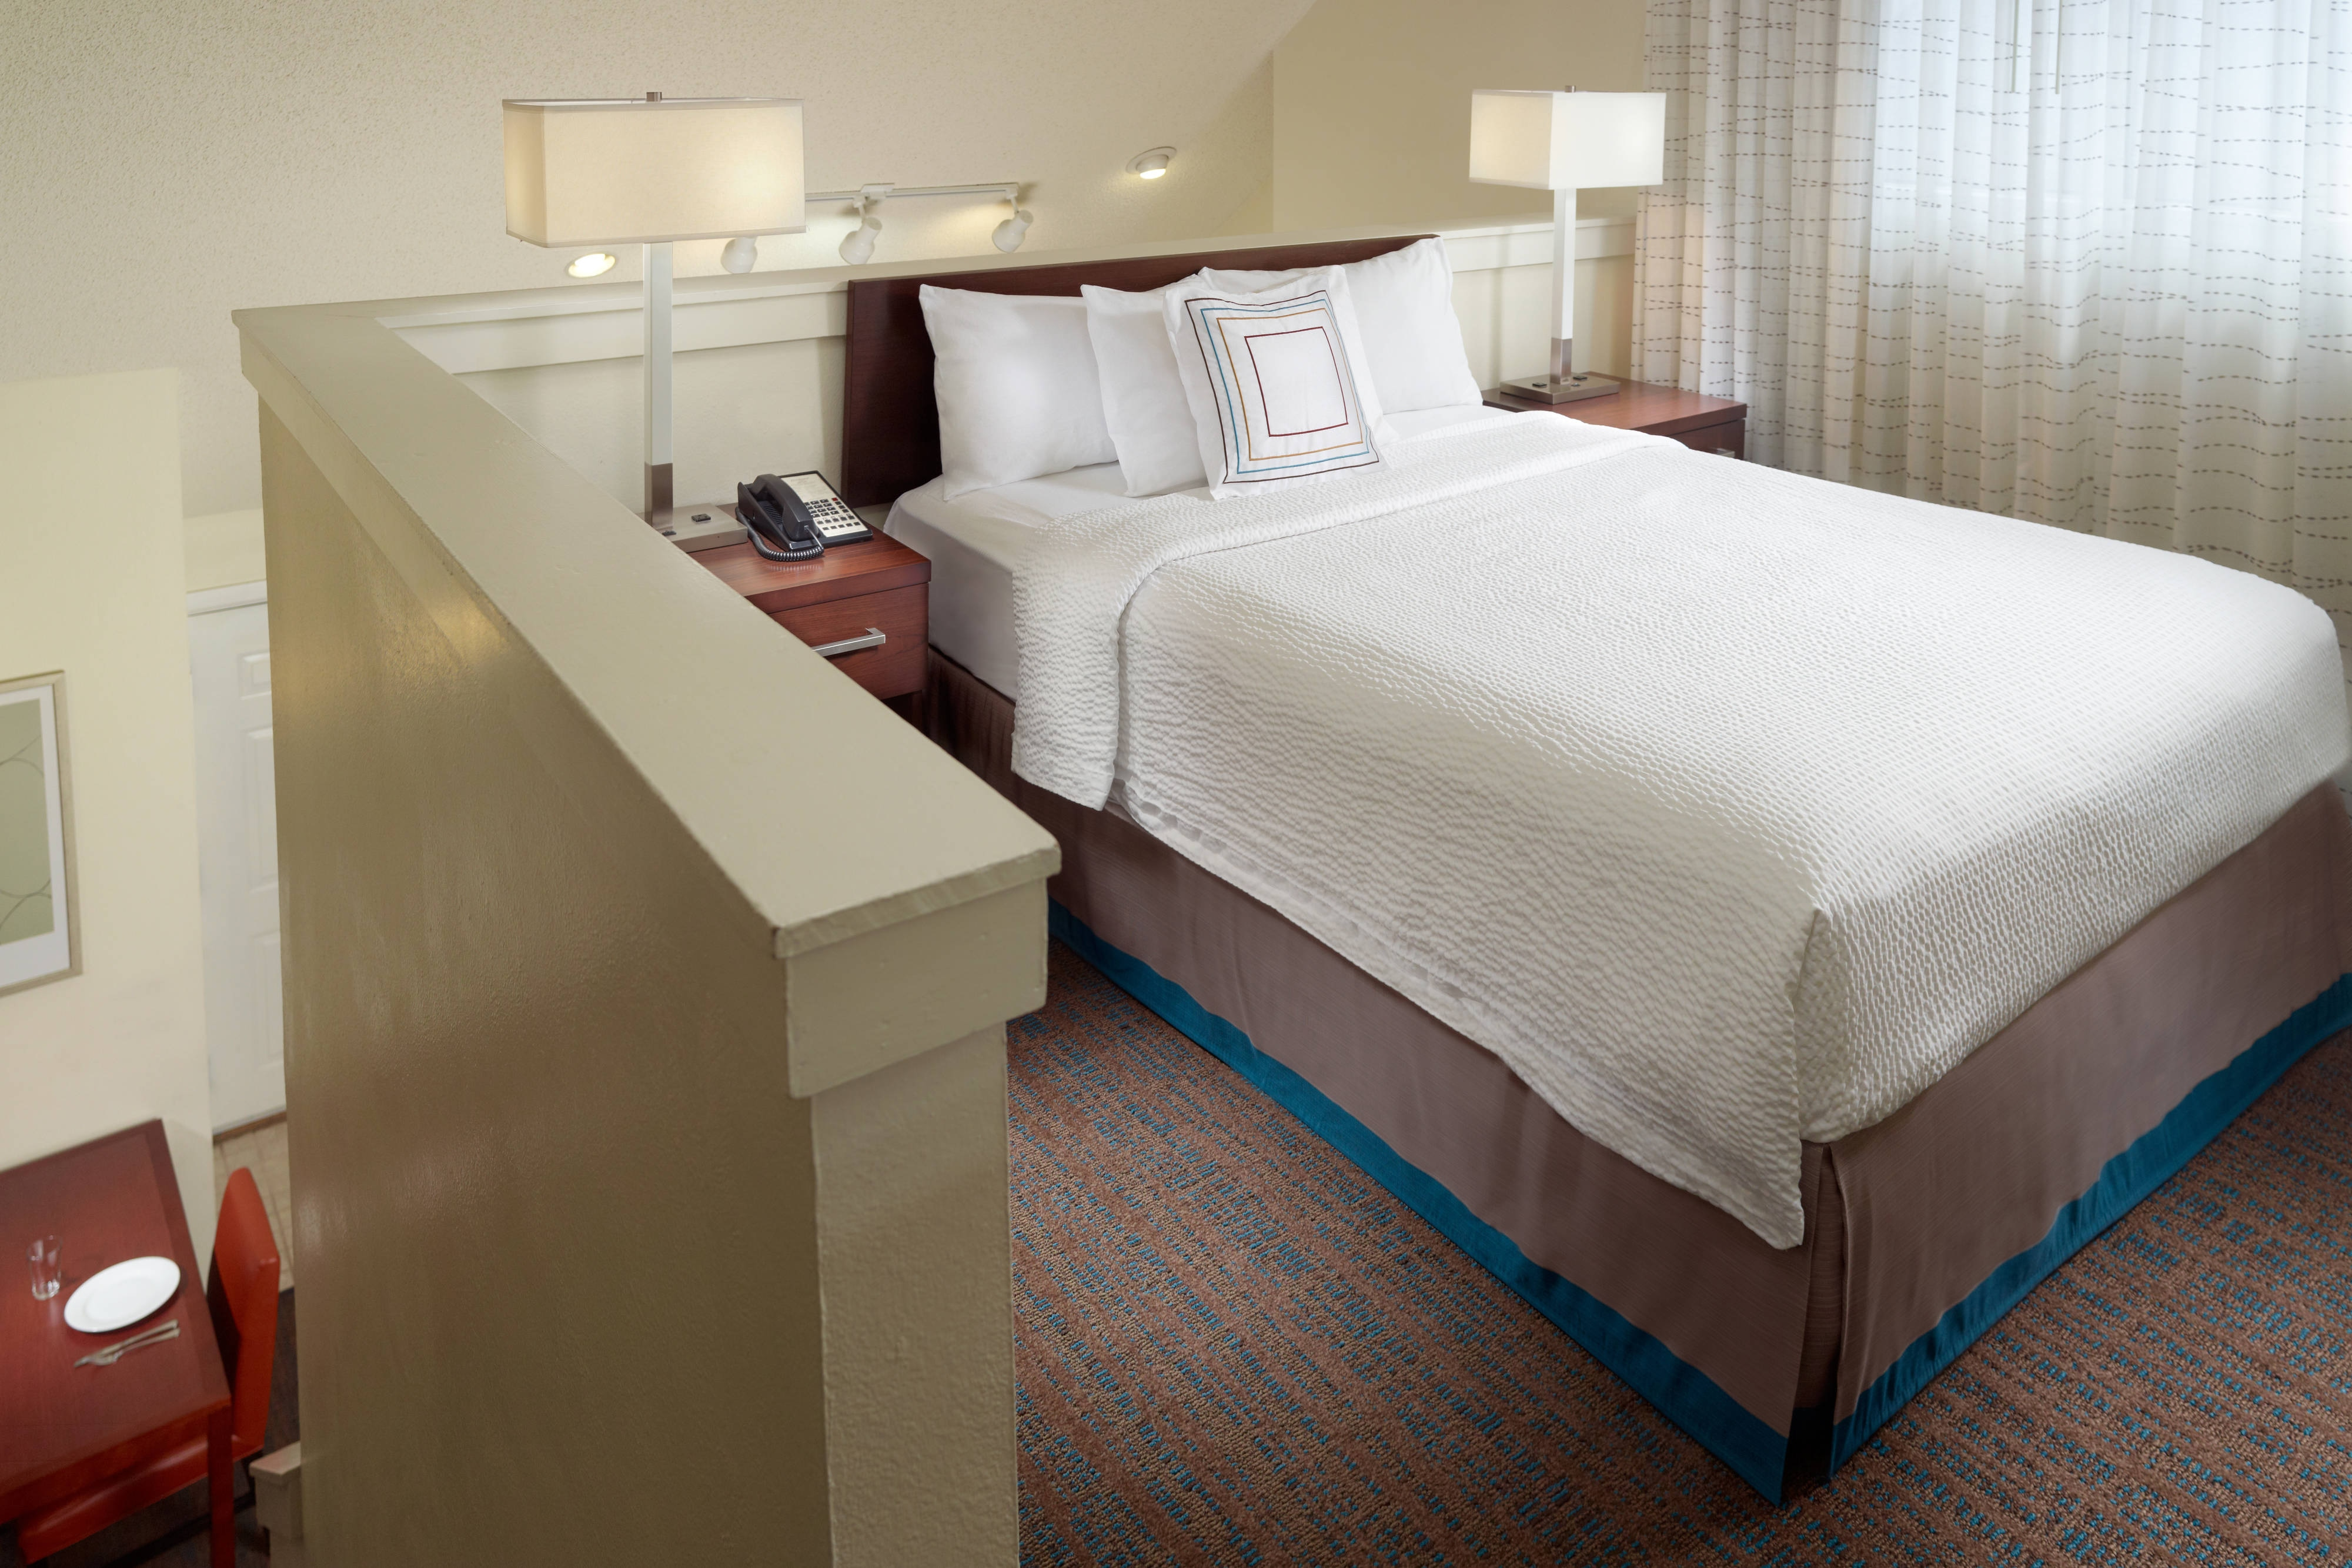 Hotels With 2 Bedroom Suites In Nashville Tn Residence